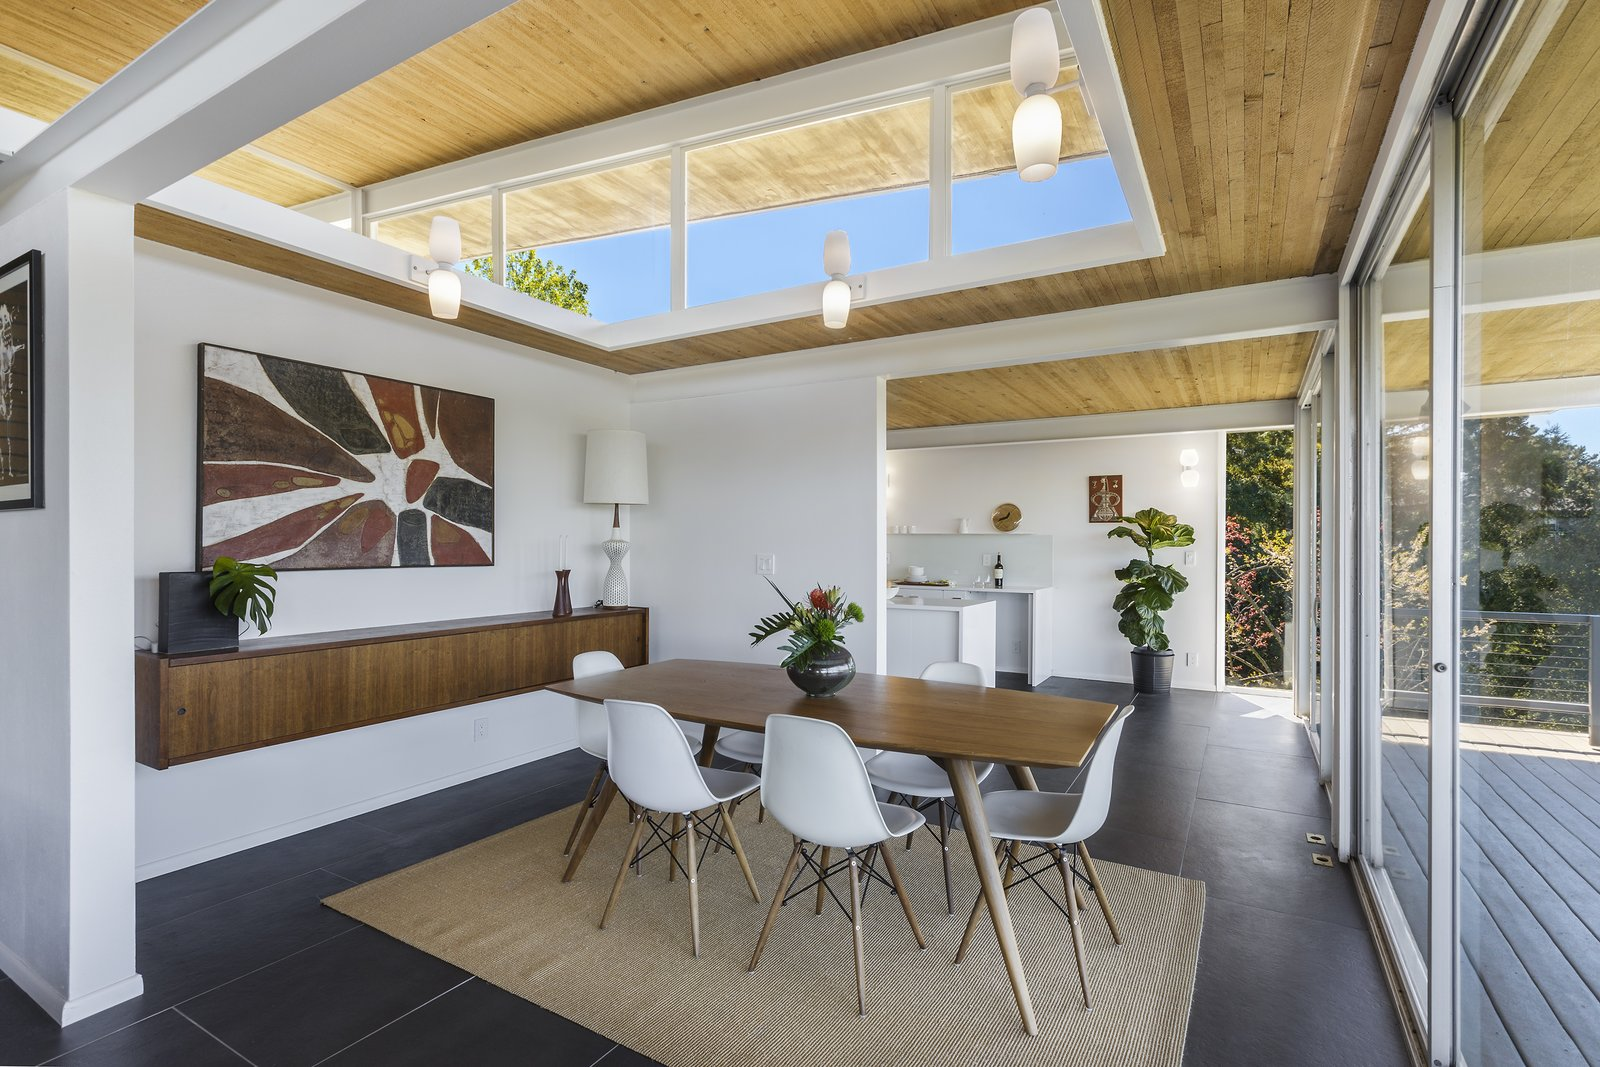 Dining Room, Table, Rug Floor, Storage, Chair, and Wall Lighting  Photo 10 of 17 in Spend the Night in an Iconic Case Study House North of San Francisco